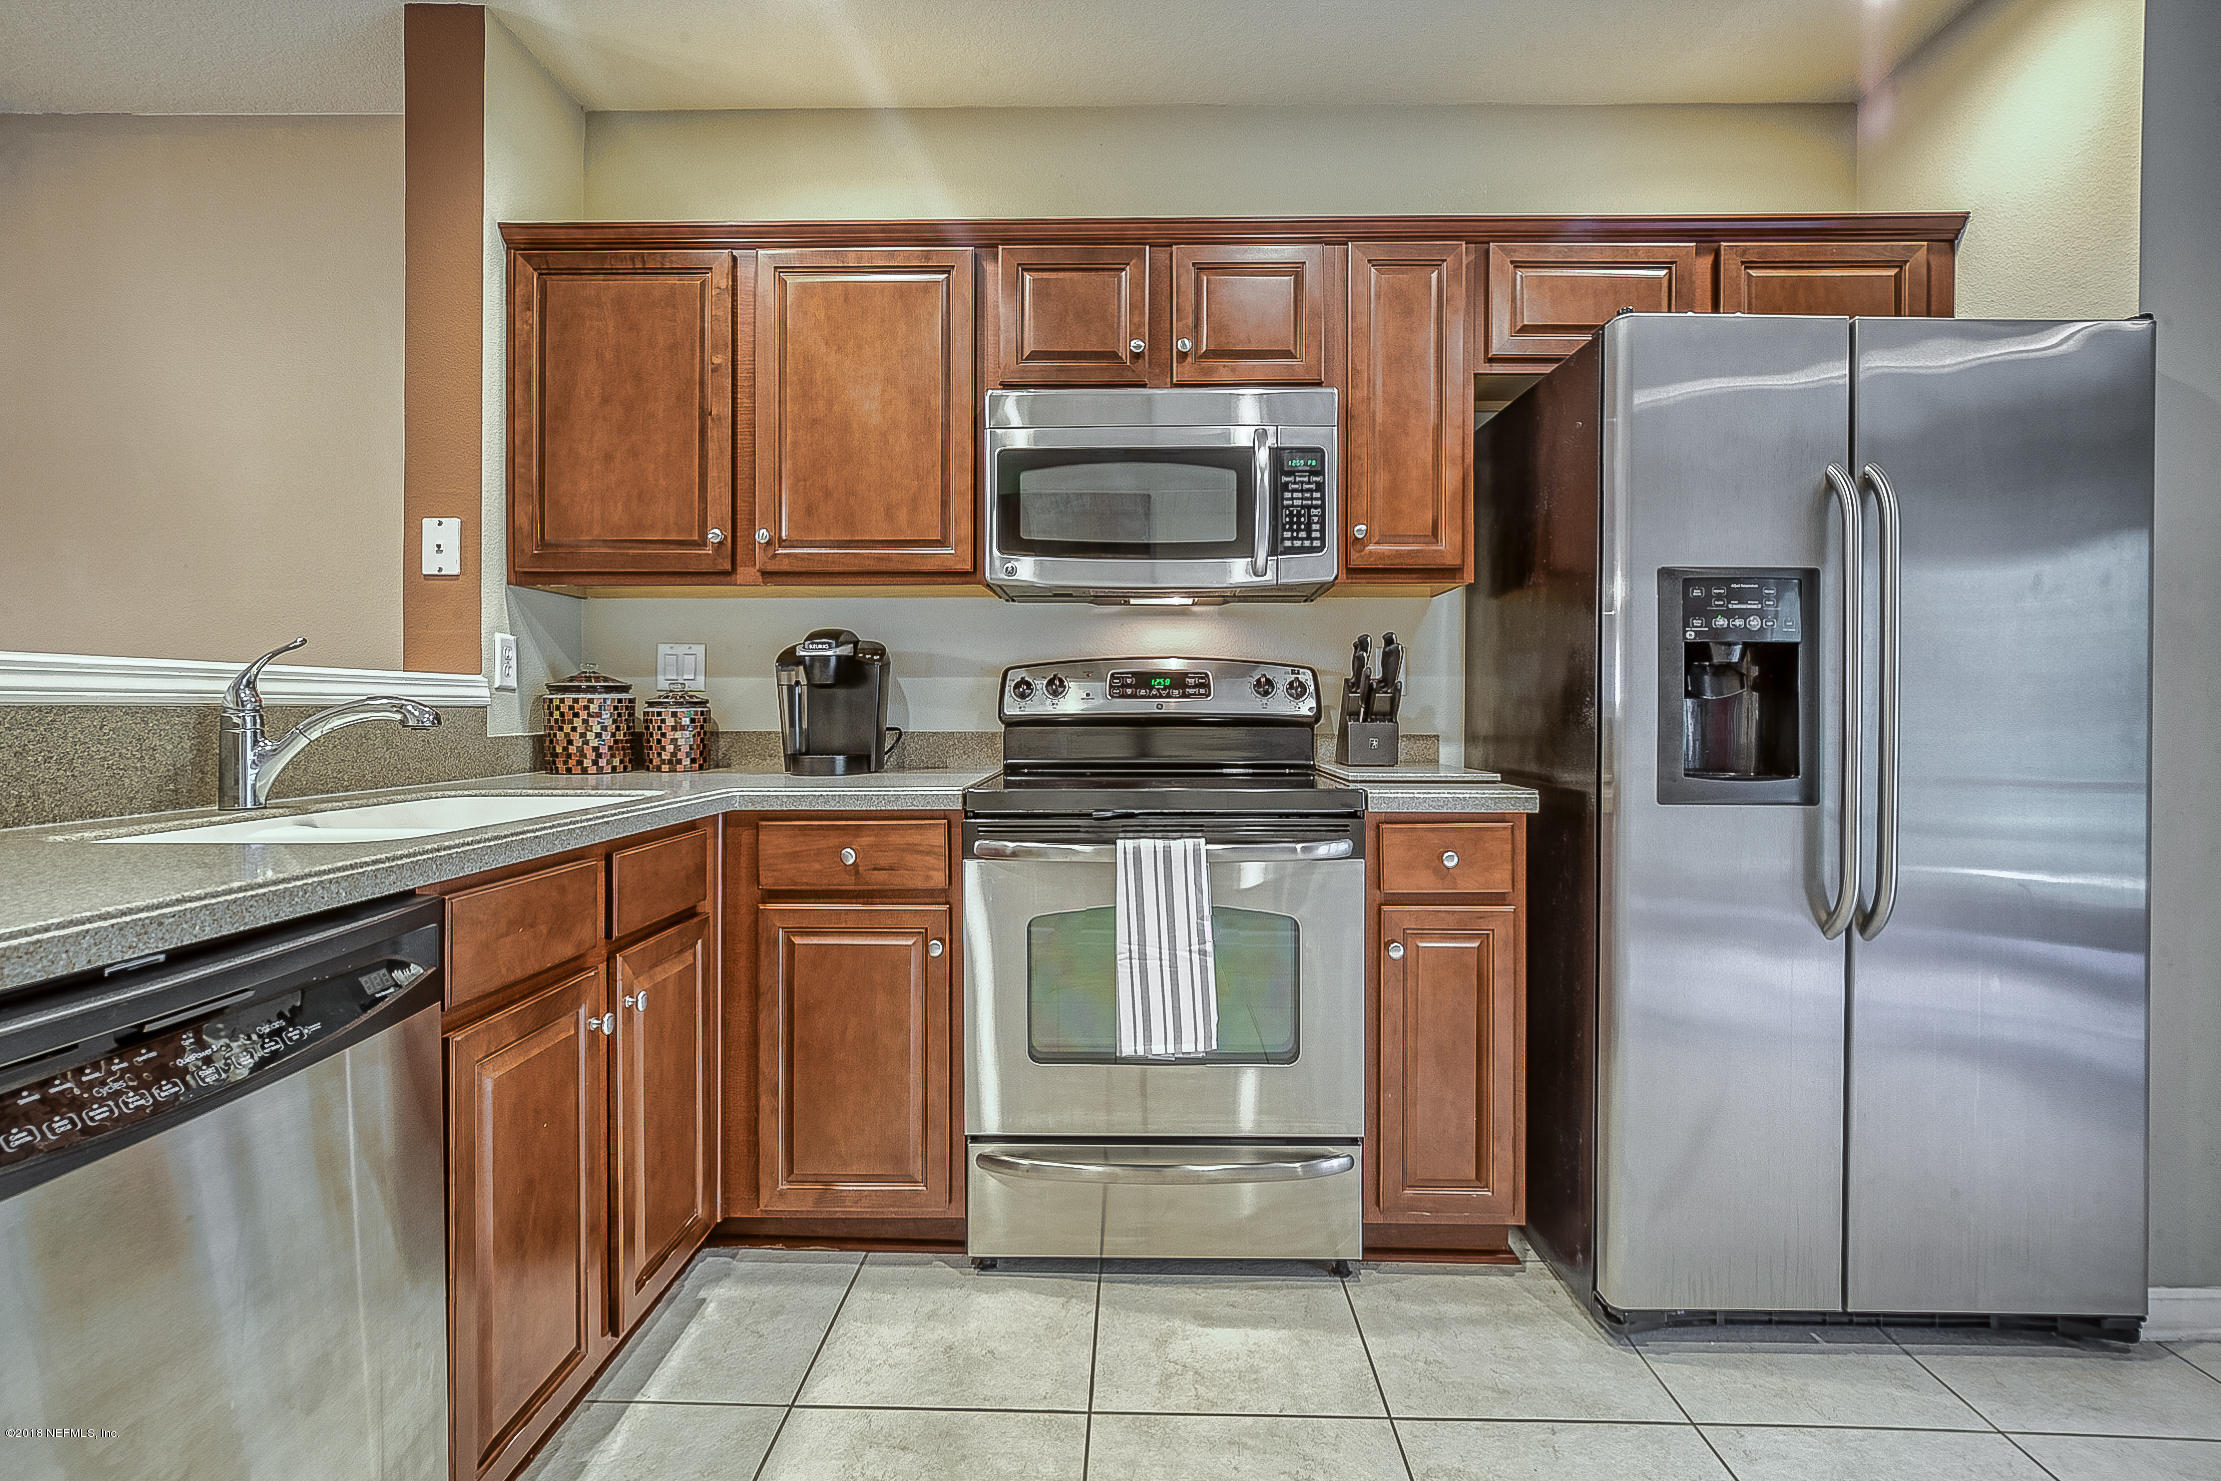 6623 ARCHING BRANCH, JACKSONVILLE, FLORIDA 32258, 2 Bedrooms Bedrooms, ,2 BathroomsBathrooms,Residential - single family,For sale,ARCHING BRANCH,961962